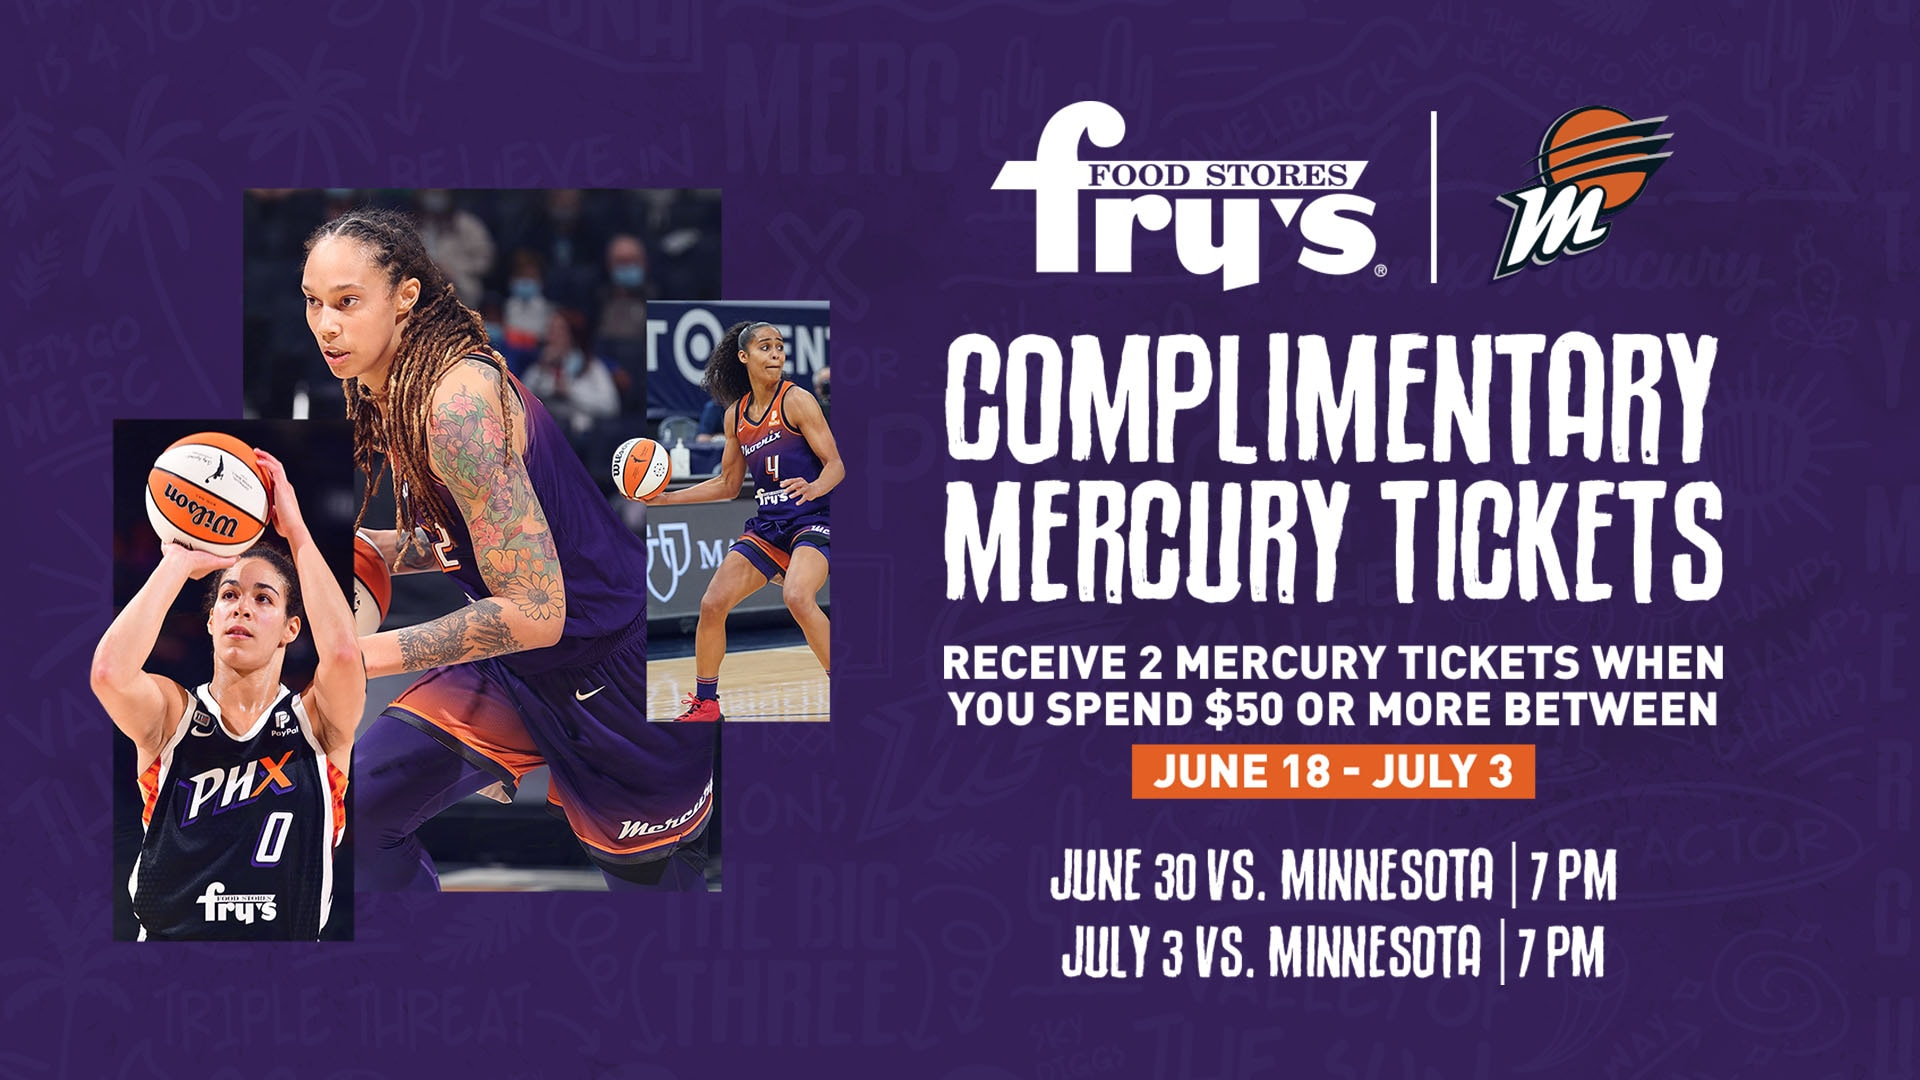 Complimentary Mercury Tickets at Fry's Food Stores